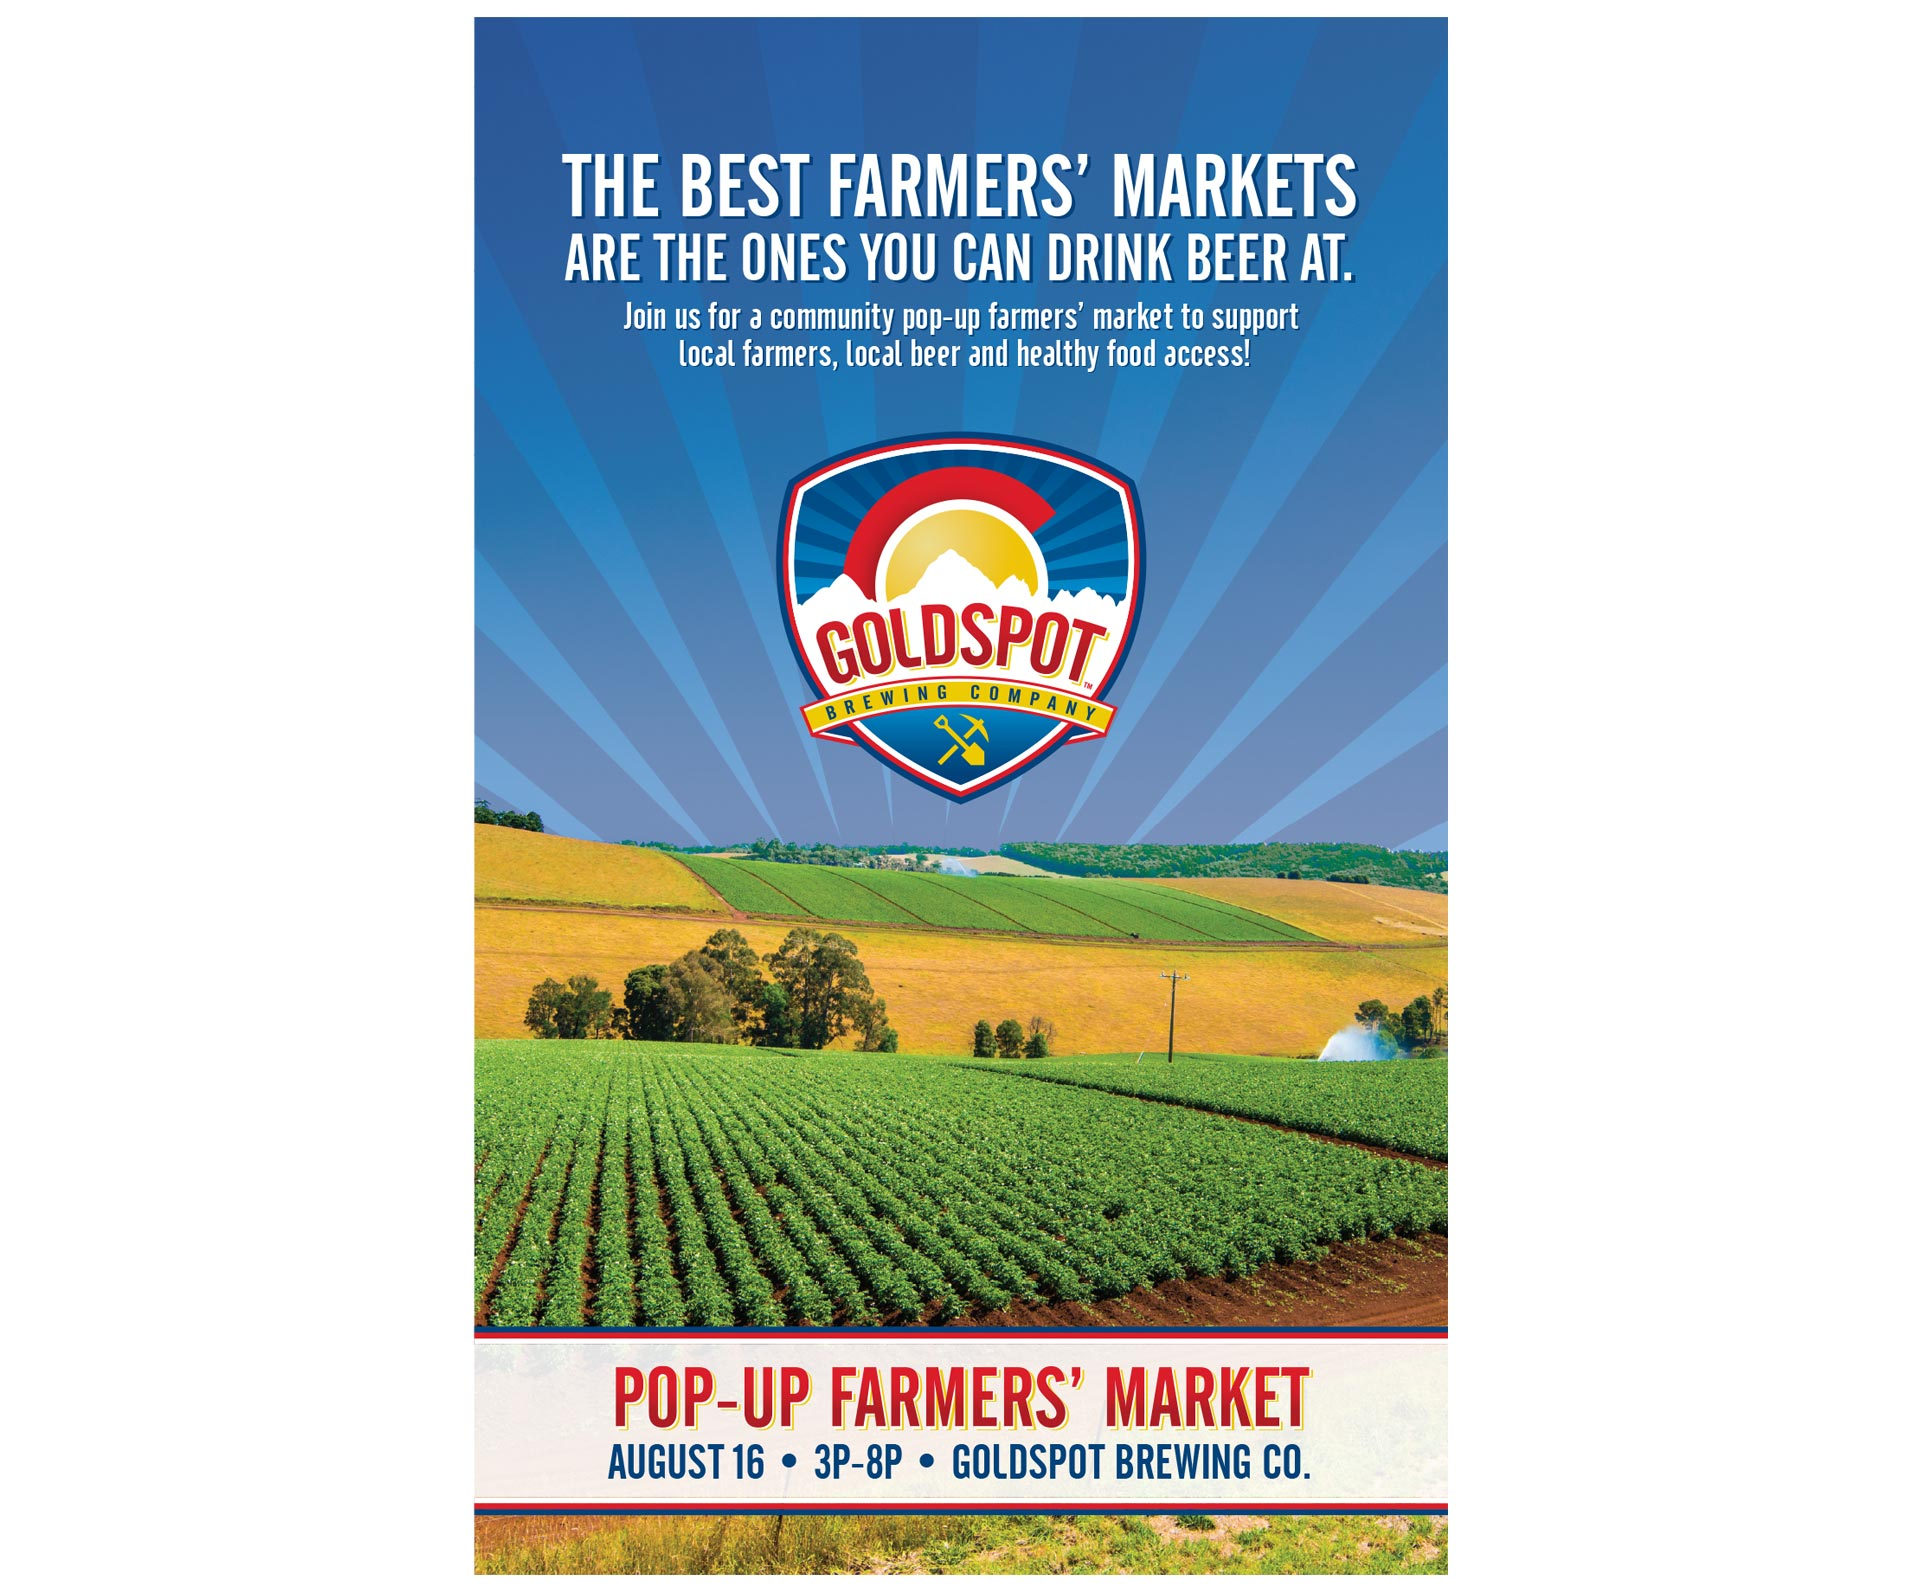 Farmers' Market Poster